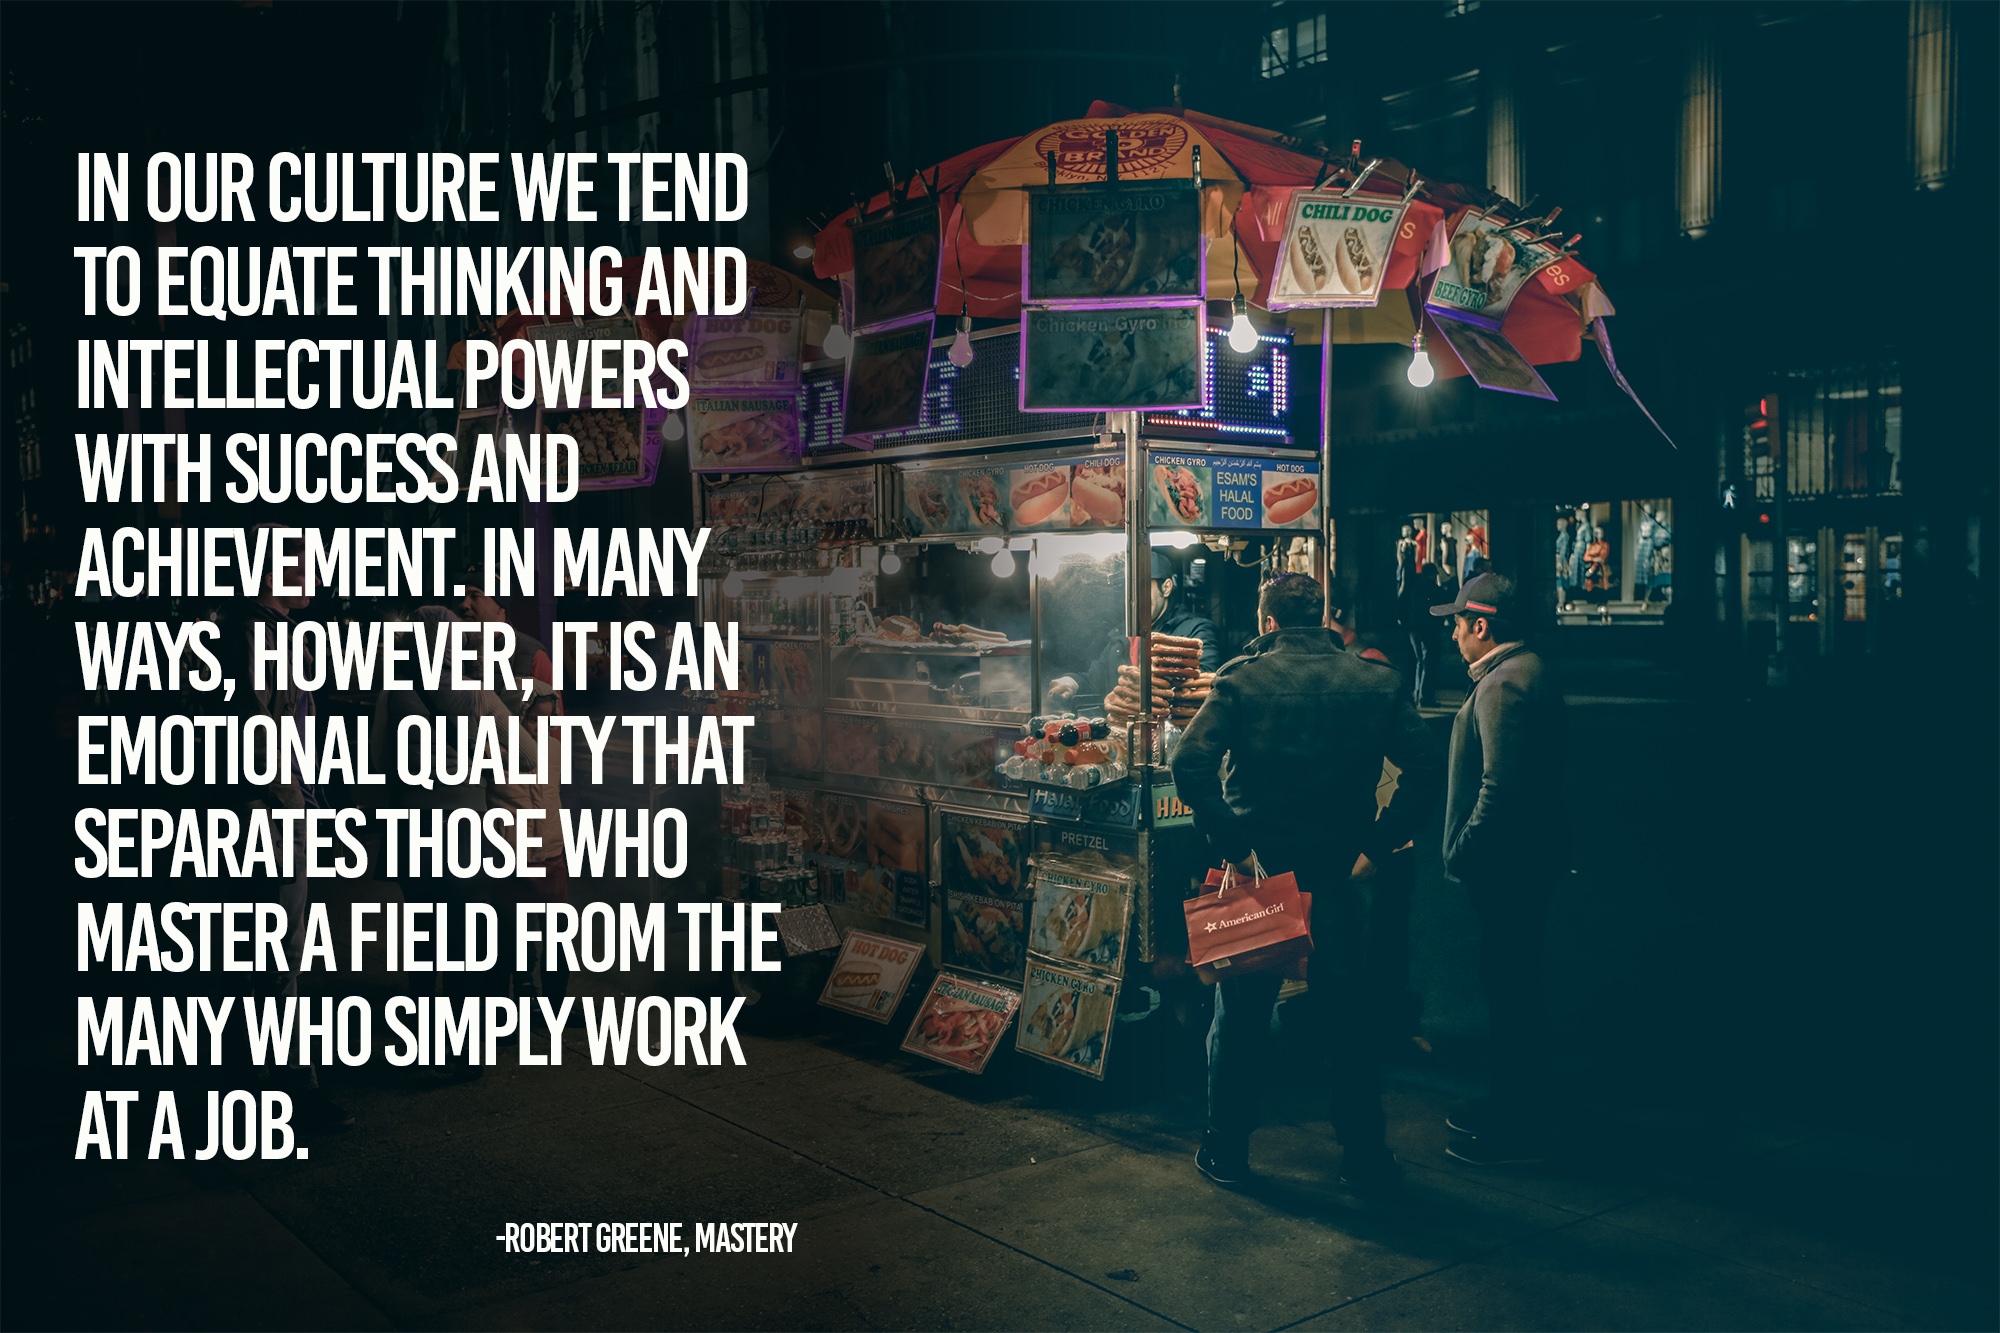 In-our-culture-we-tend-to-equate-thinking-and-intellectual-power